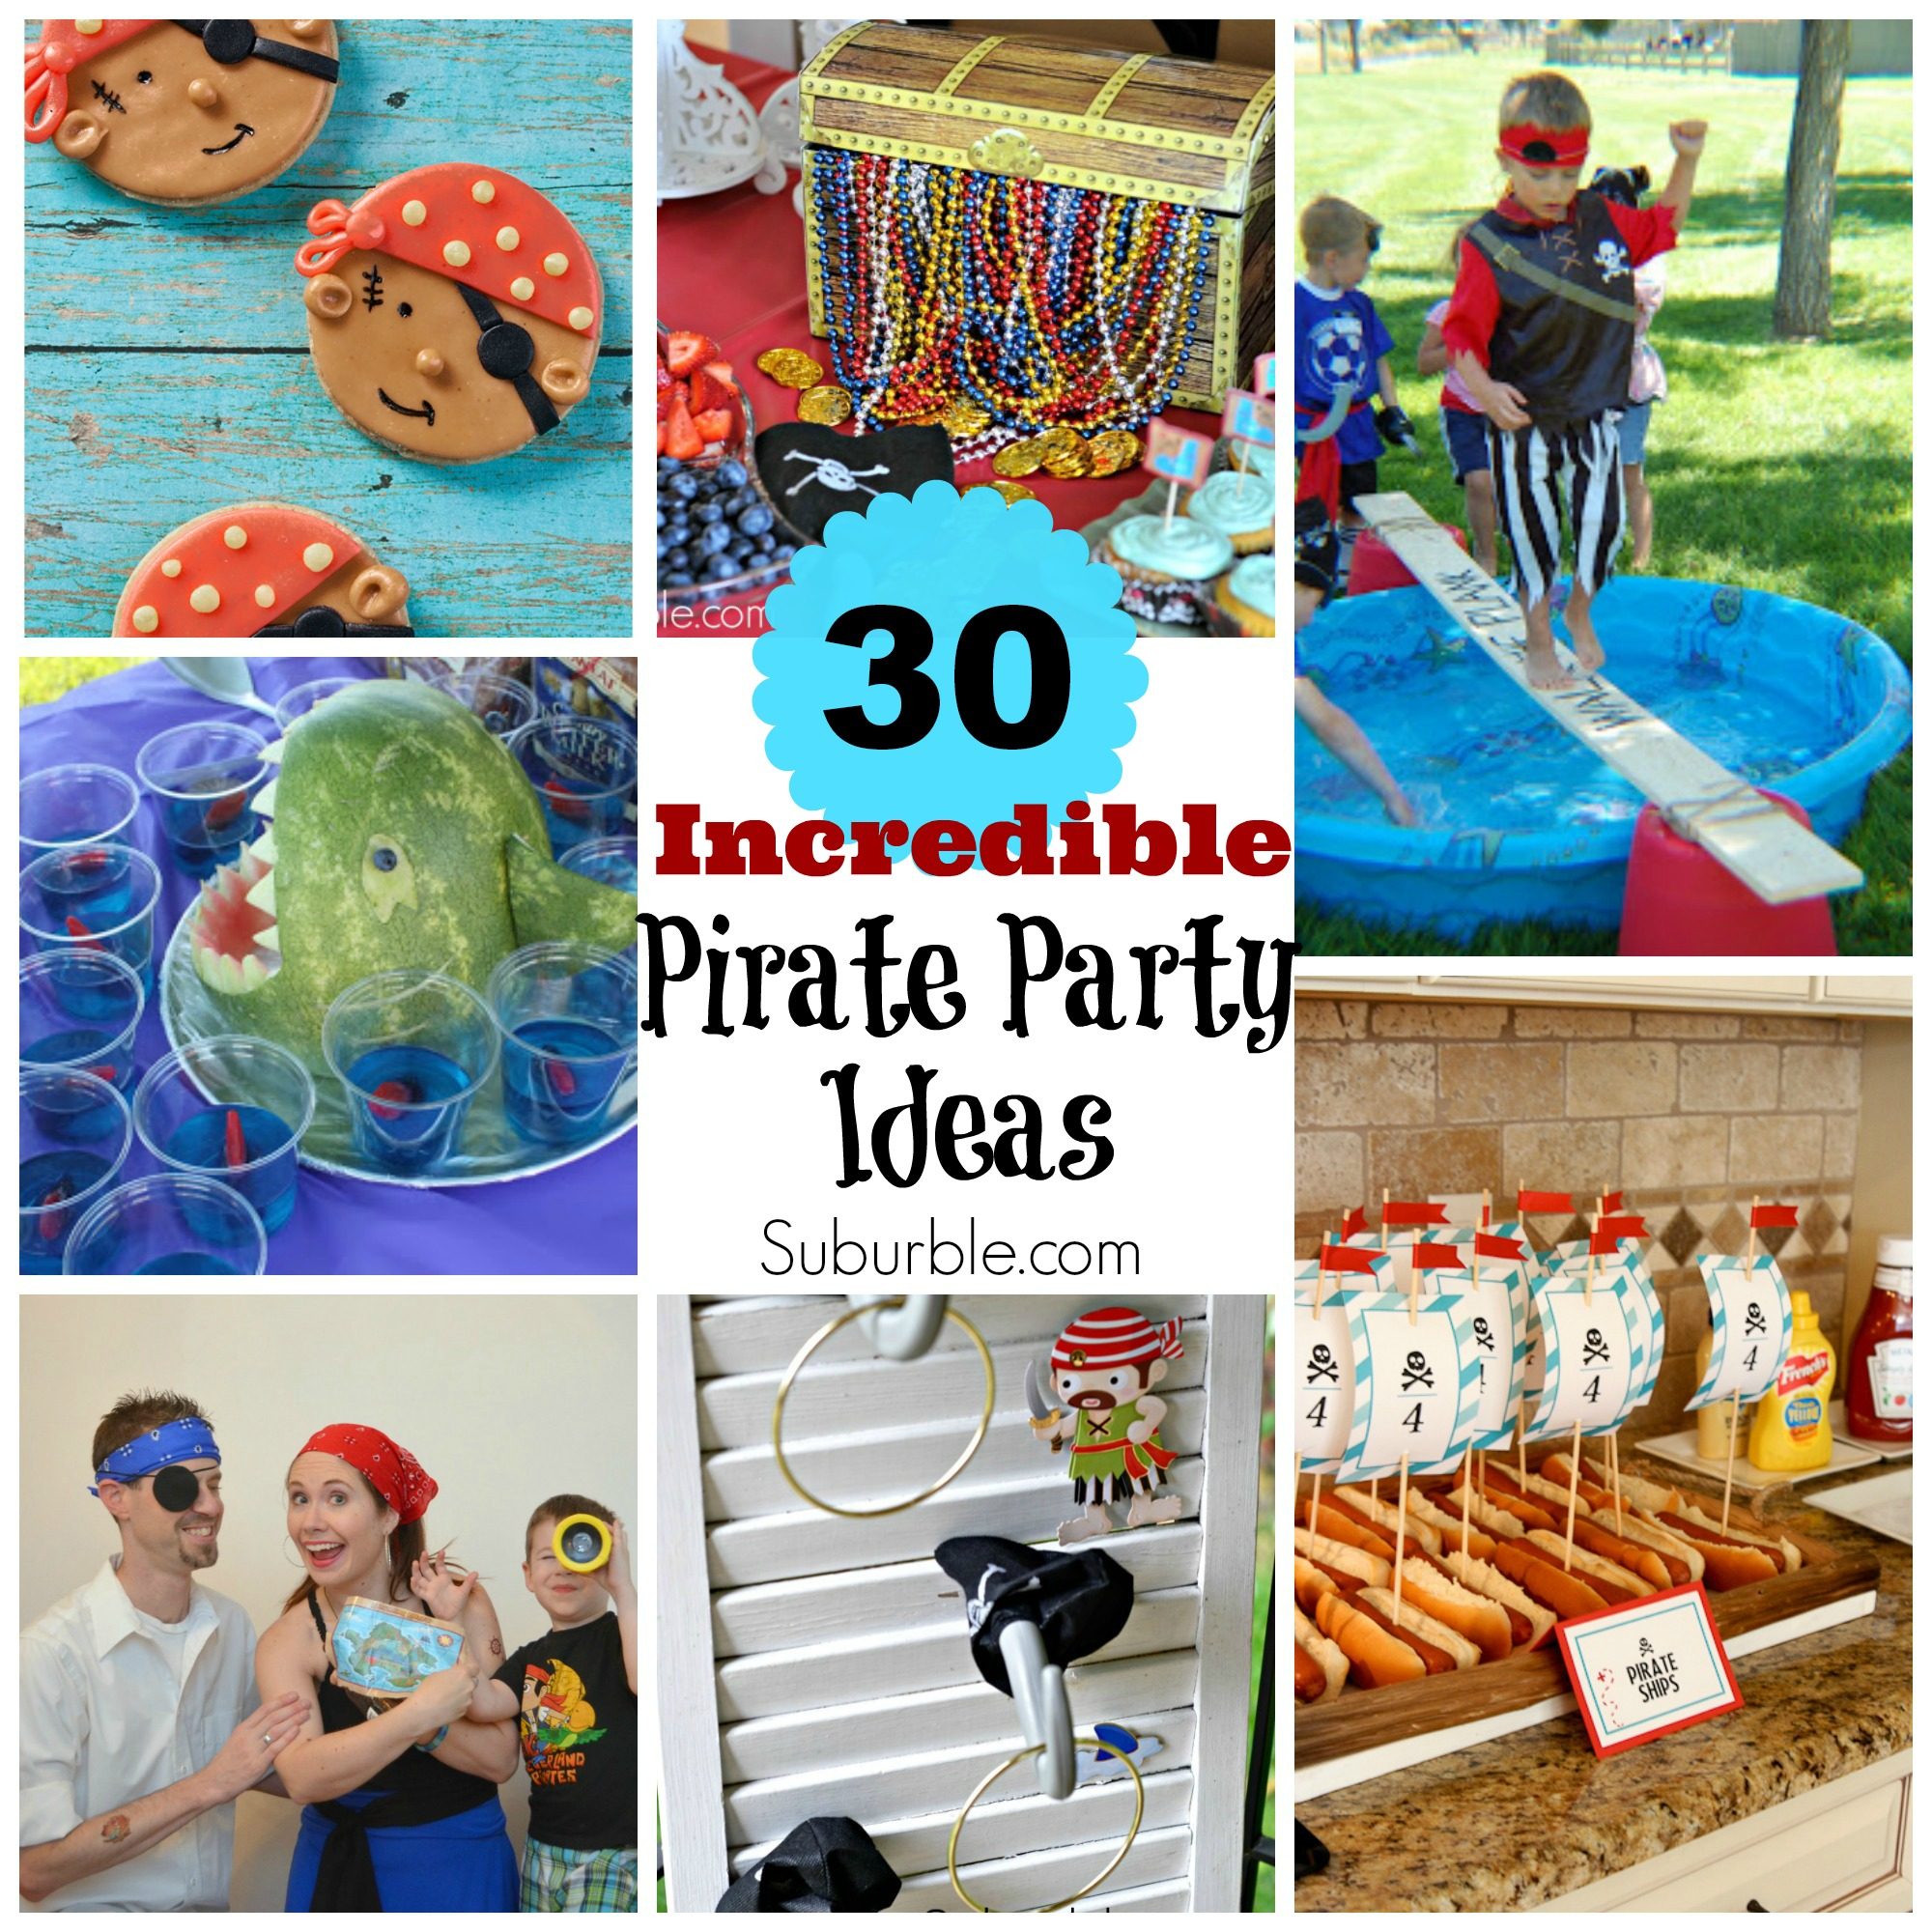 30 Incredible Pirate Party Ideas